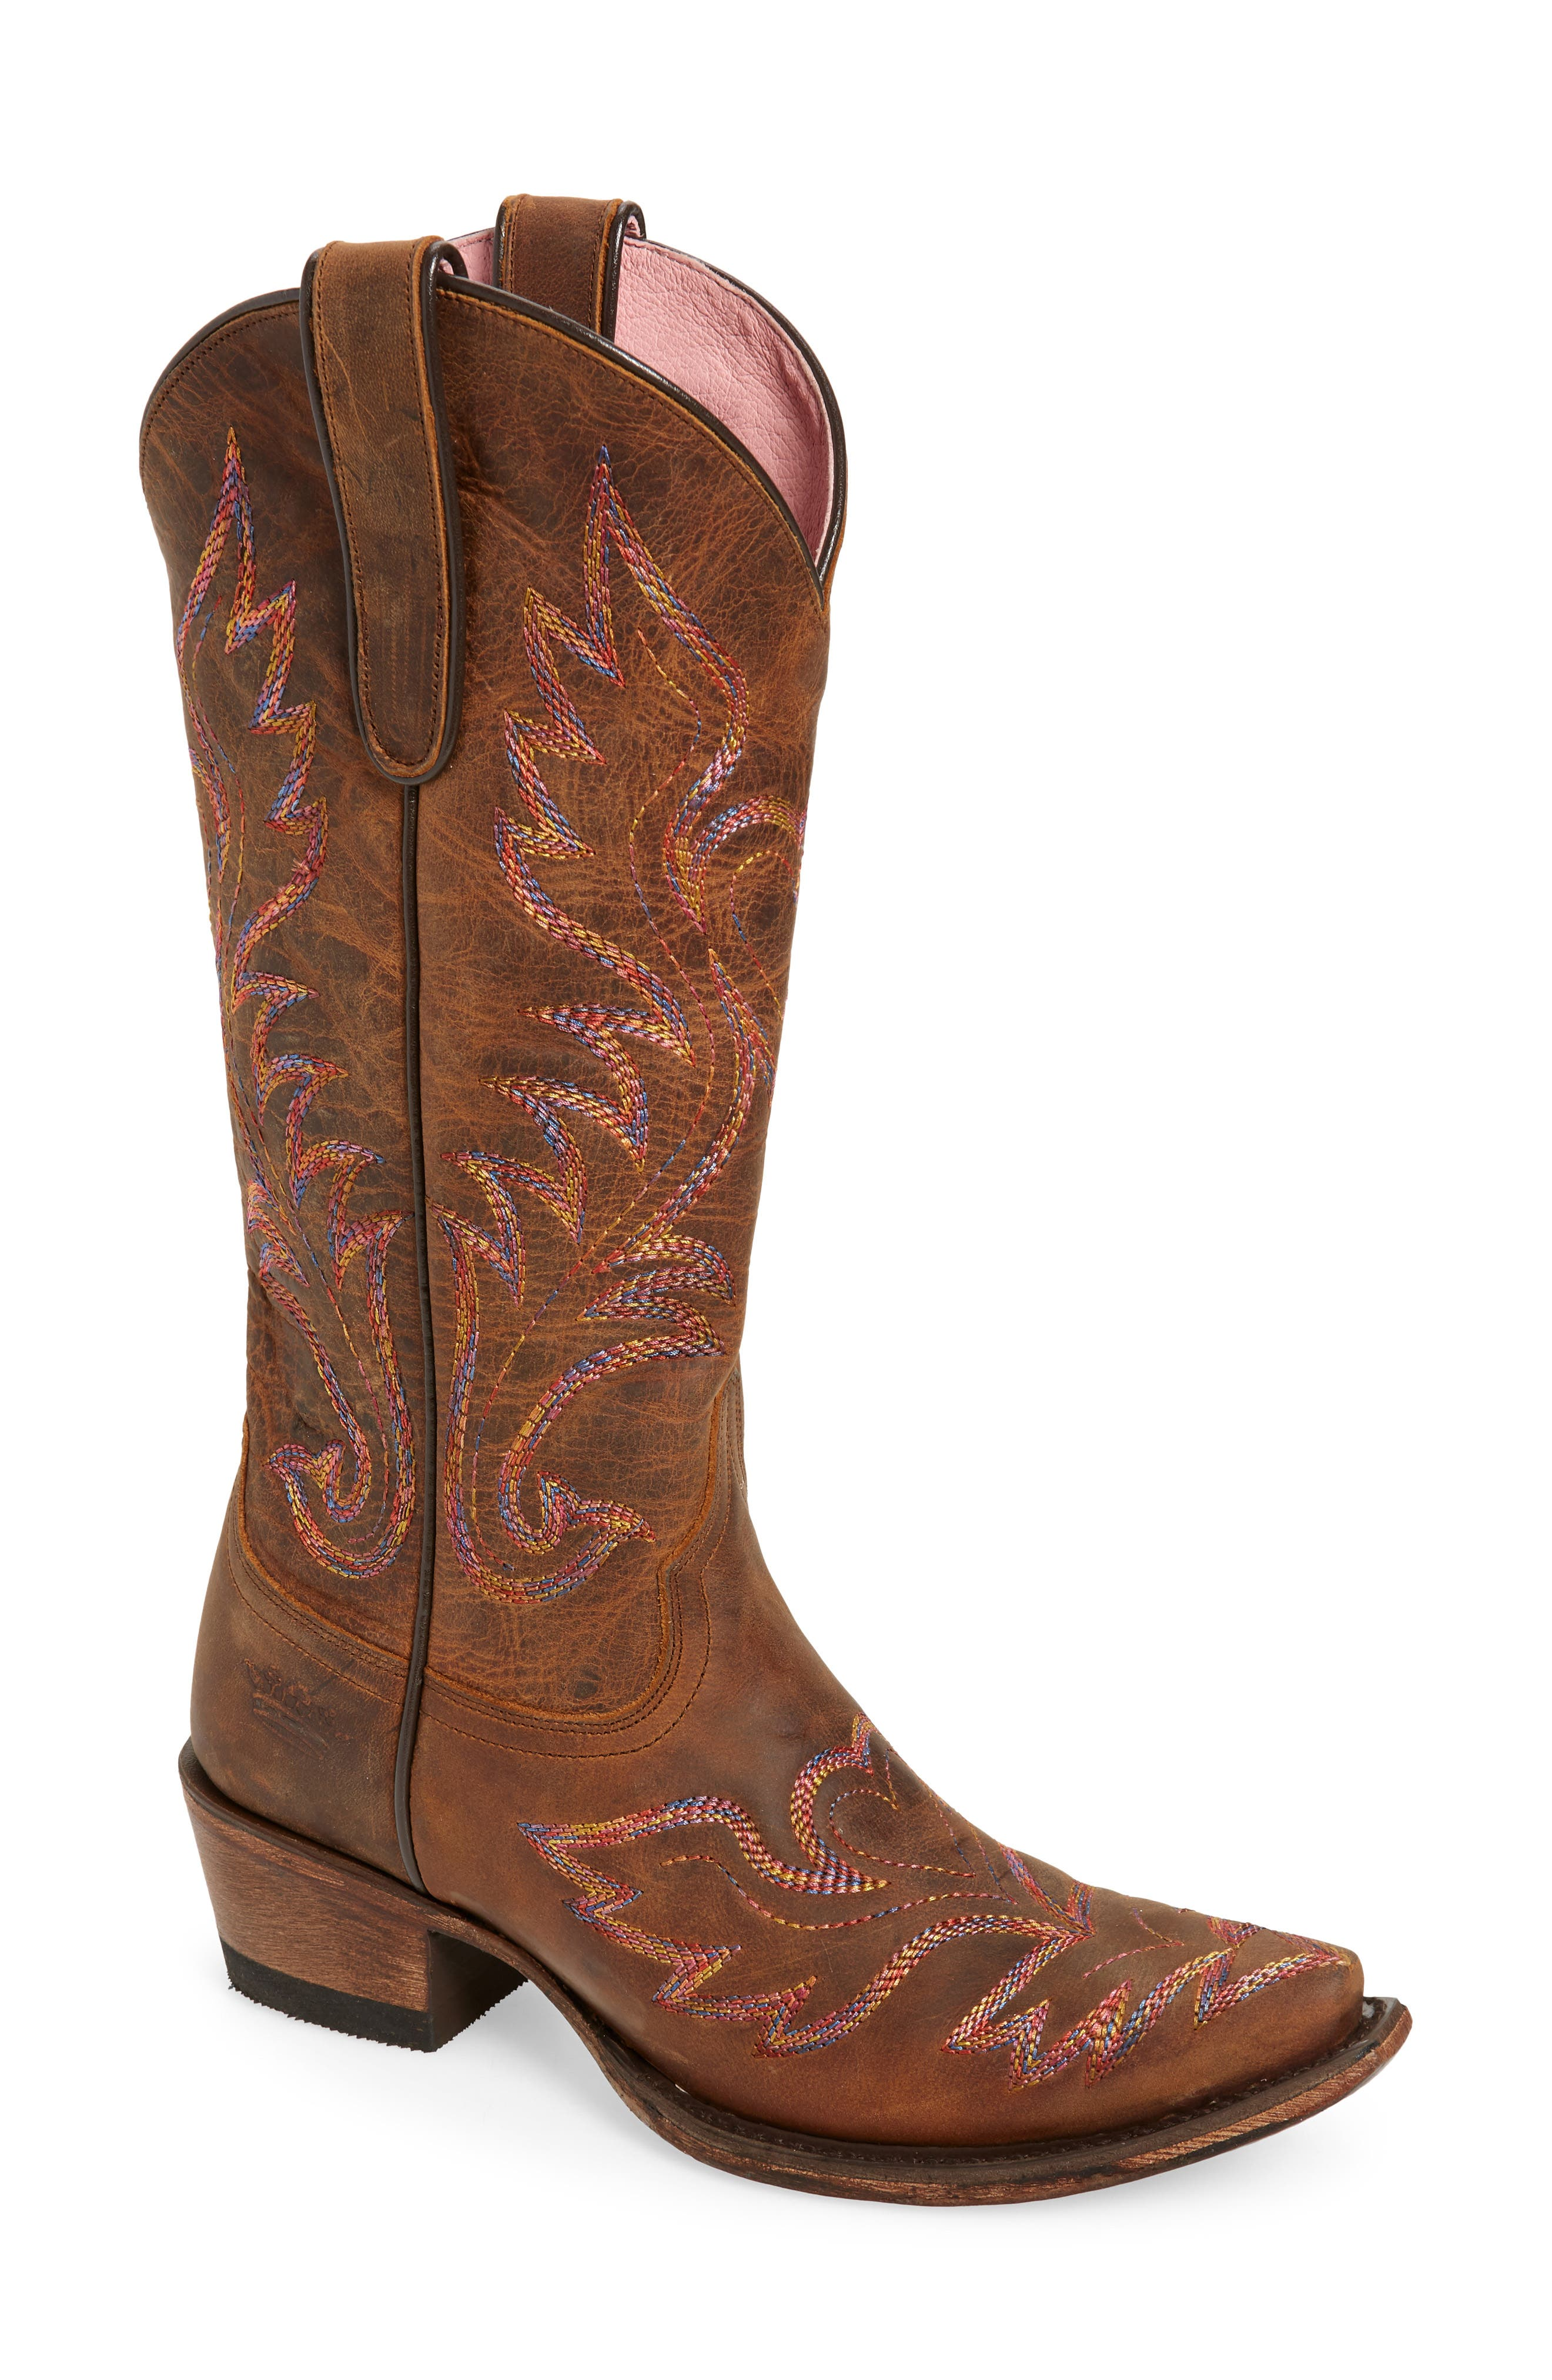 Six-row flame stitching in rainbow hues-with a winged heart embroidered at the front-dynamically details this snub-toe cowgirl boot benchcrafted in Mexico. It\\\'s part of a limited collaboration between Lane Boots and eclectic boho brand Junk Gypsy. Style Name: Lane Boots X Junk Gypsy Wildheart Boot (Women). Style Number: 6013355. Available in stores.